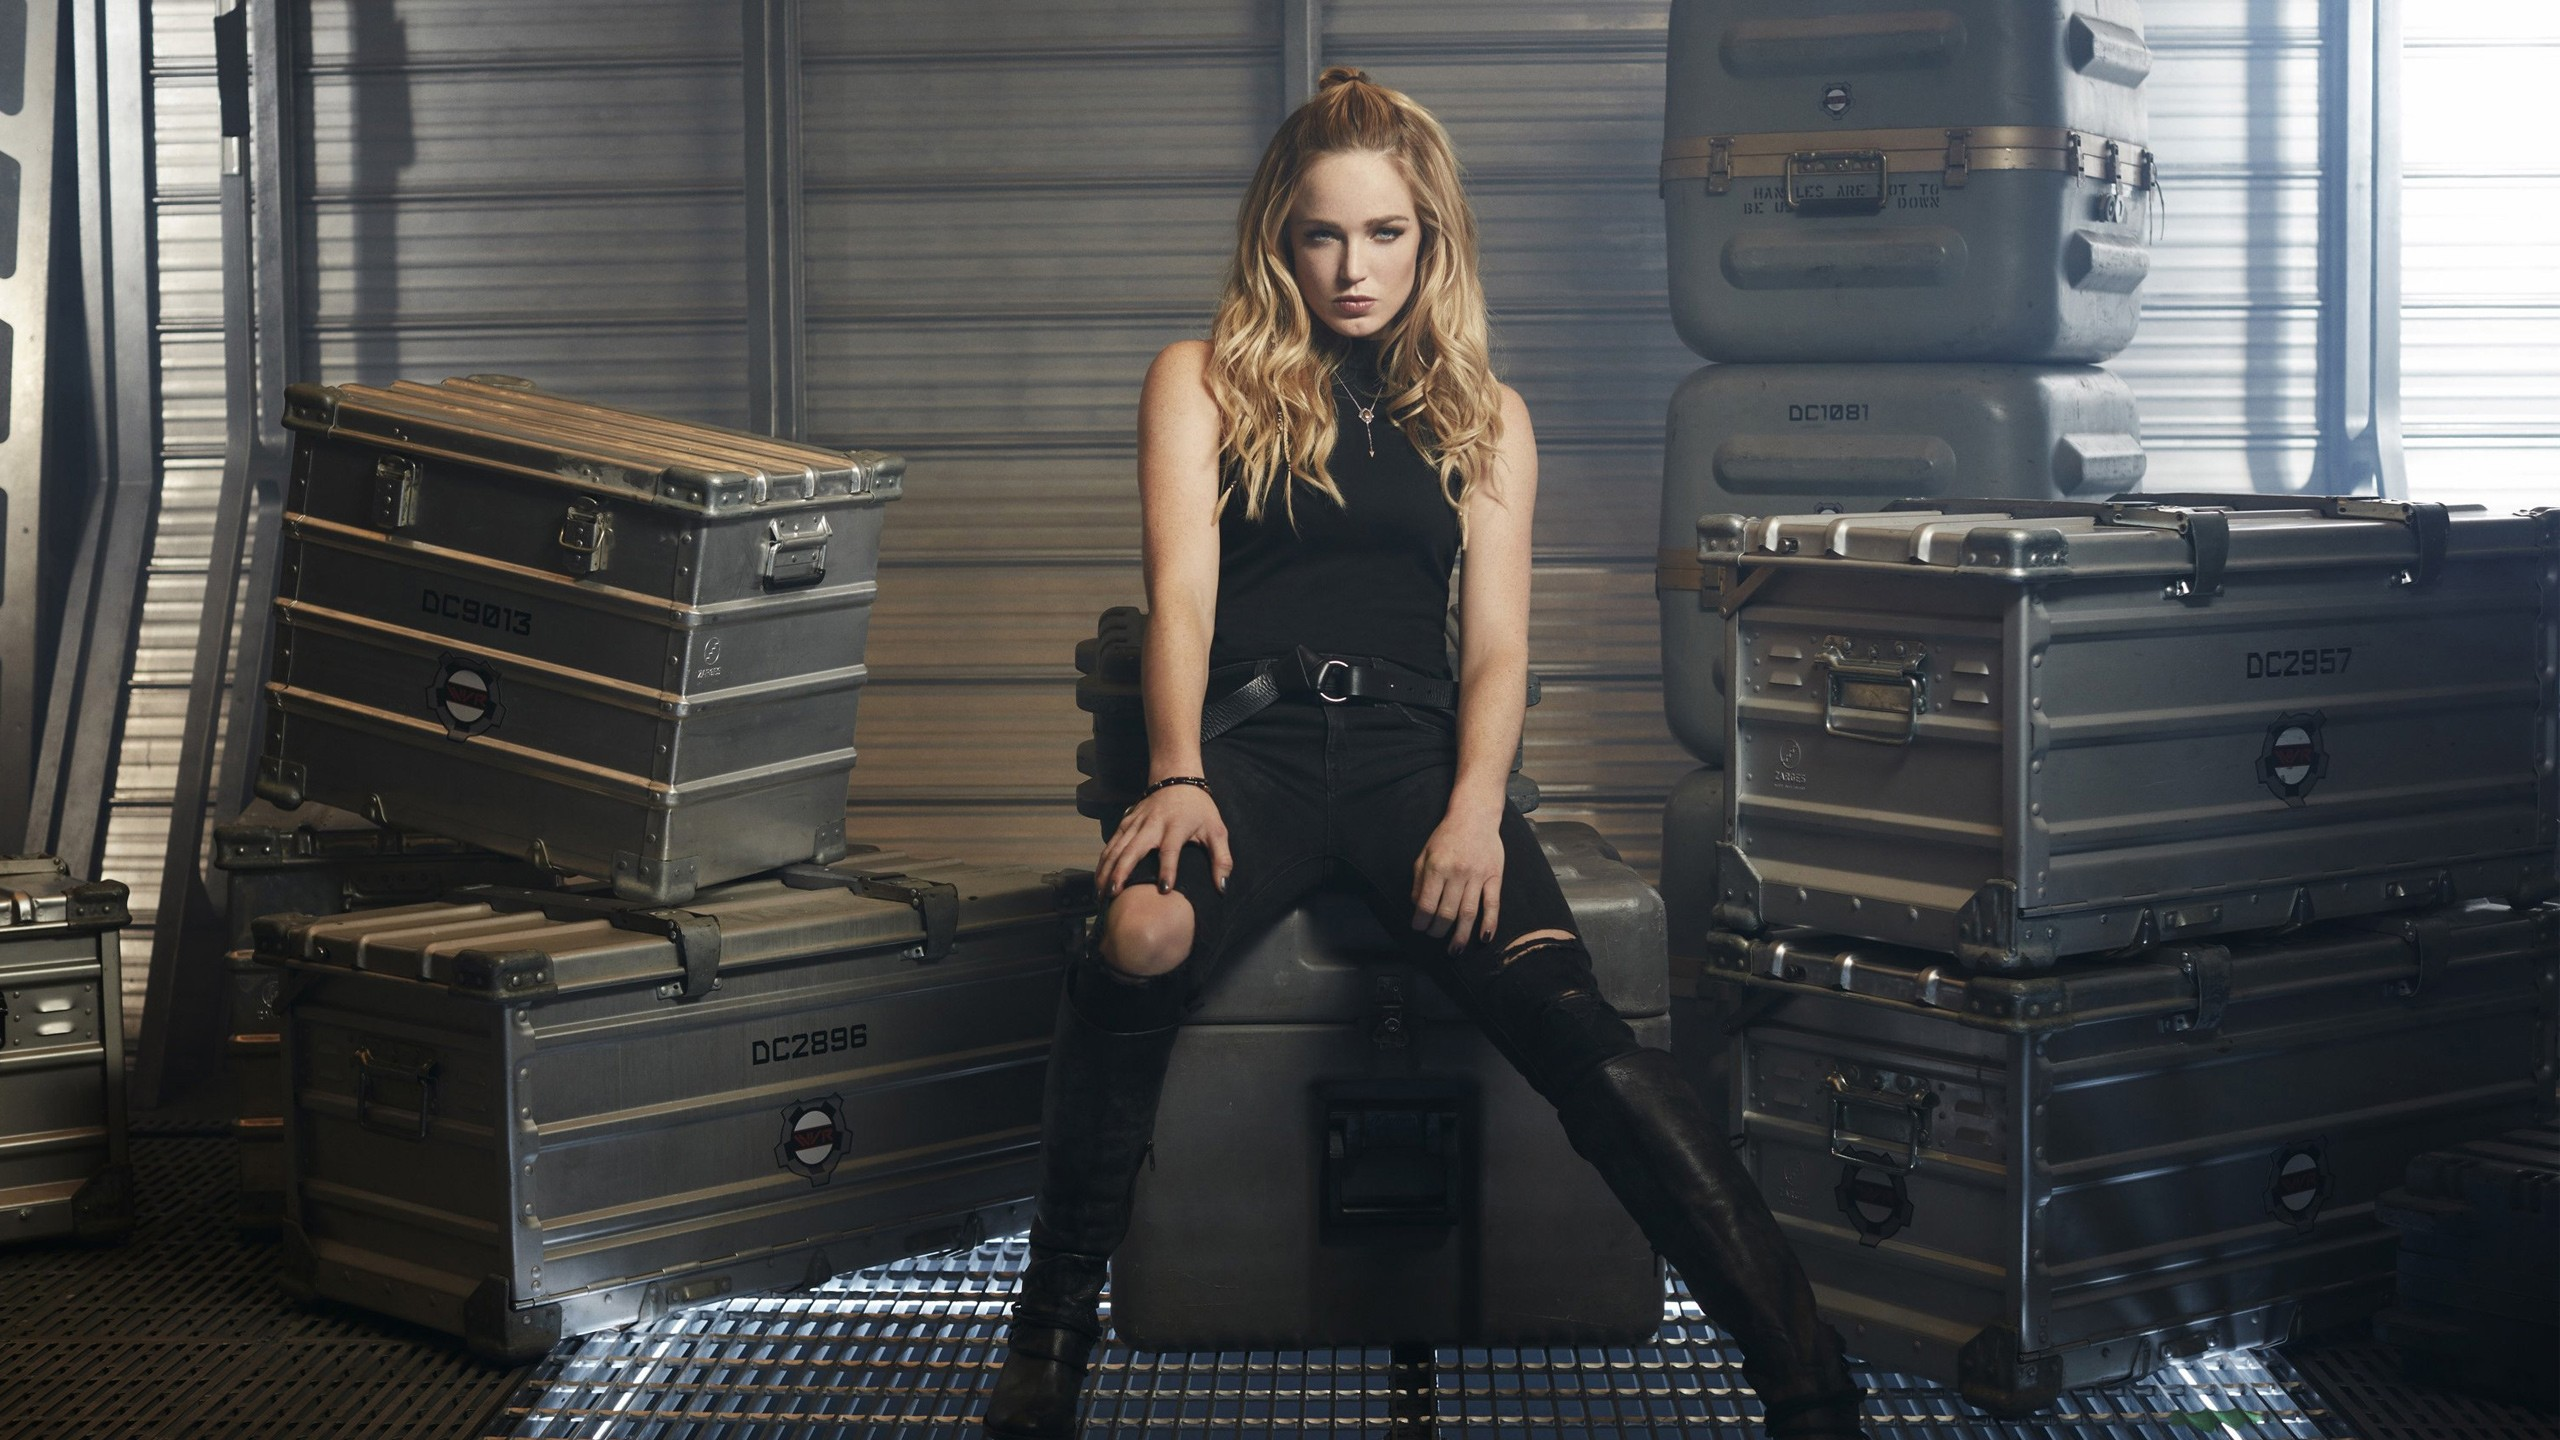 caity lotz actress wallpaper background 62243